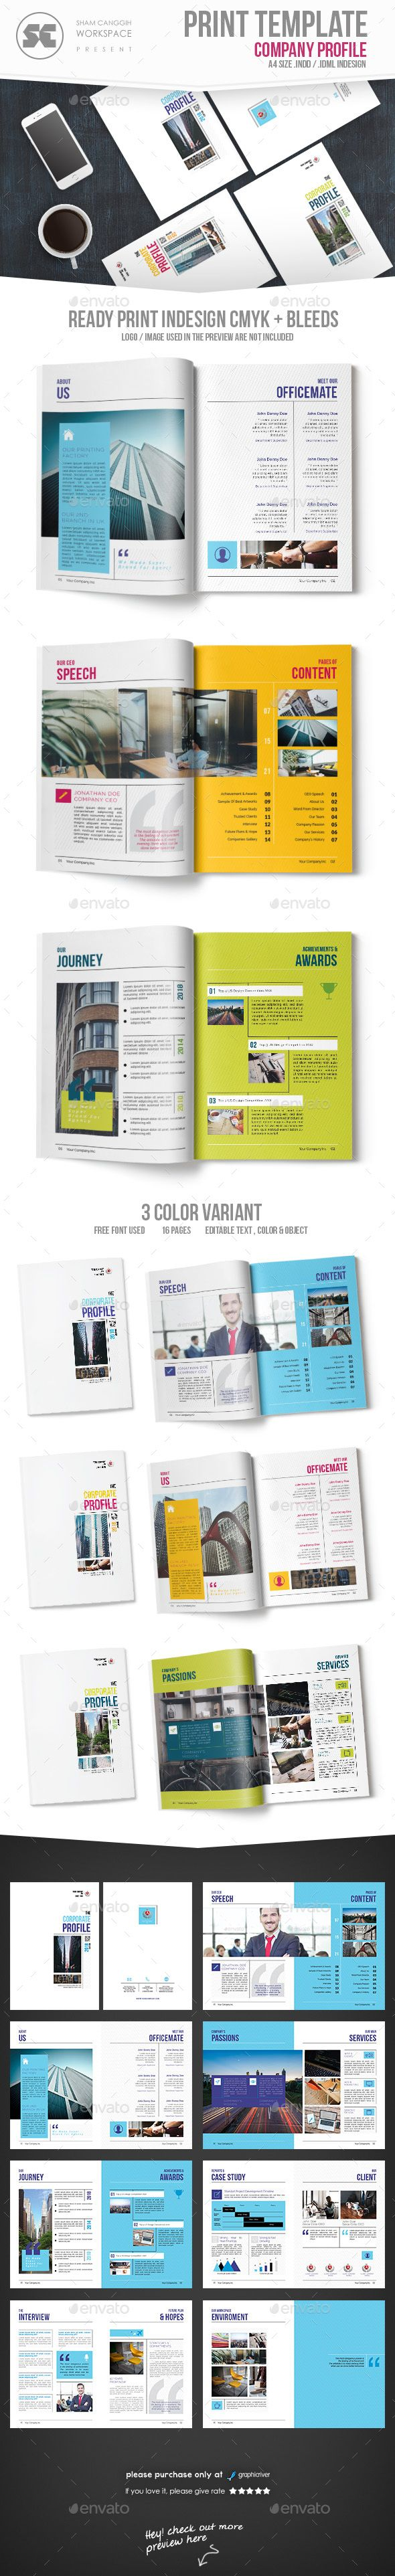 Company Profile Brochure Template InDesign INDD